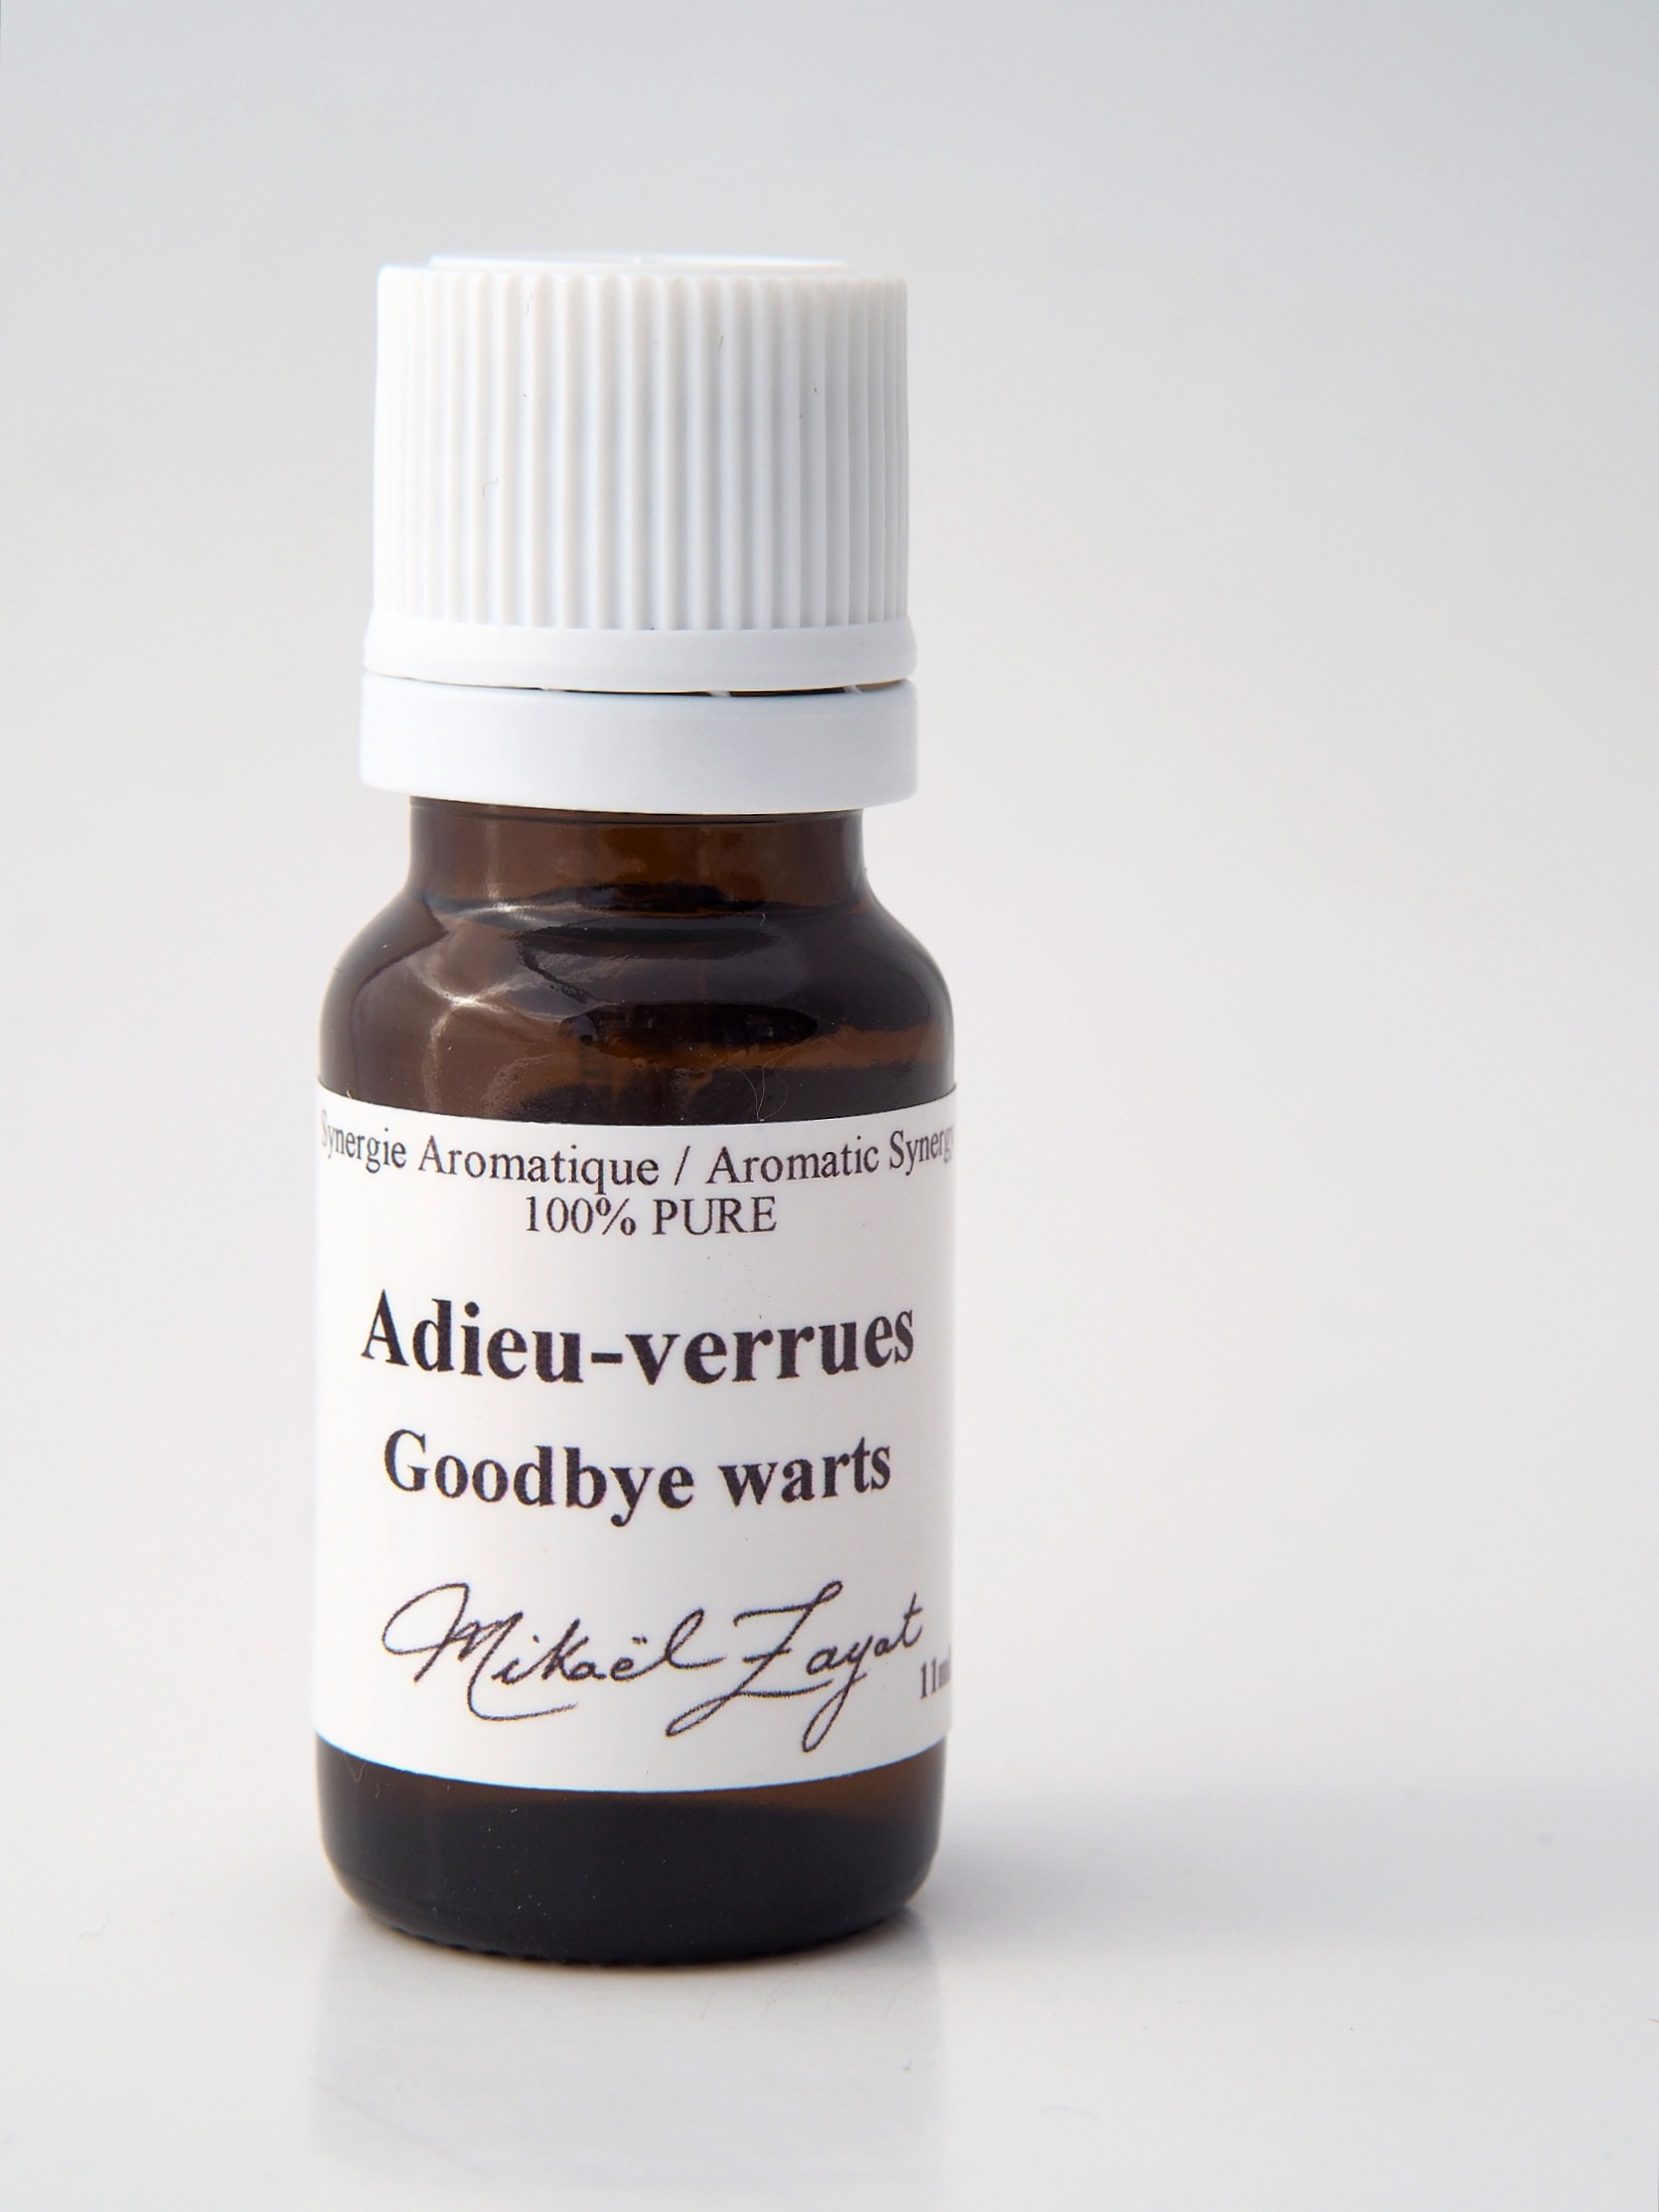 Adieu-verrues (11 ml)